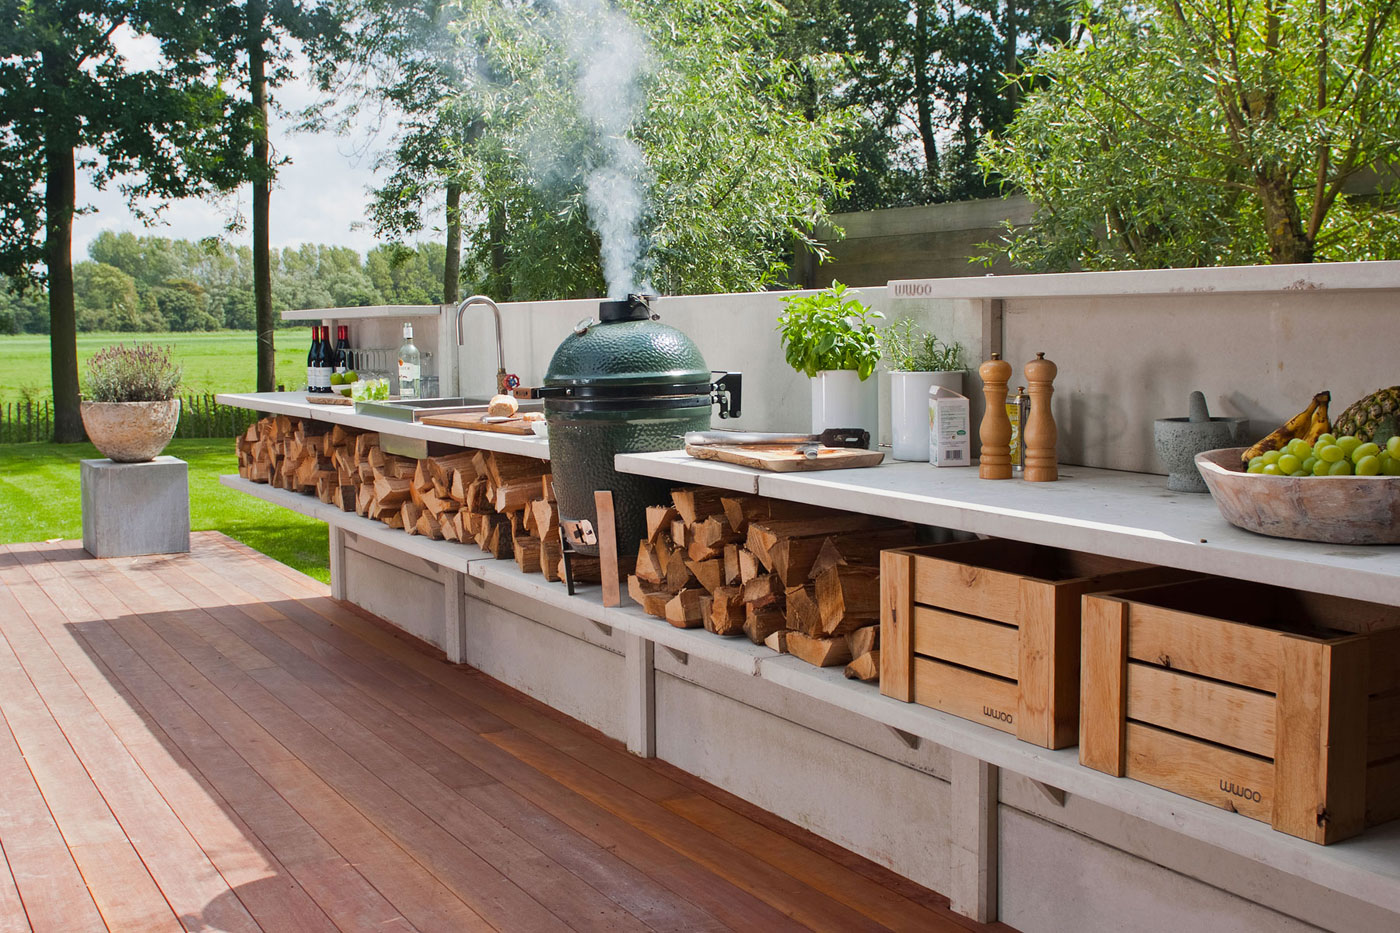 Outdoor Kitchen Designs Unique 15 Best Outdoor Kitchen Ideas And Designs  Pictures Of Beautiful . Design Decoration